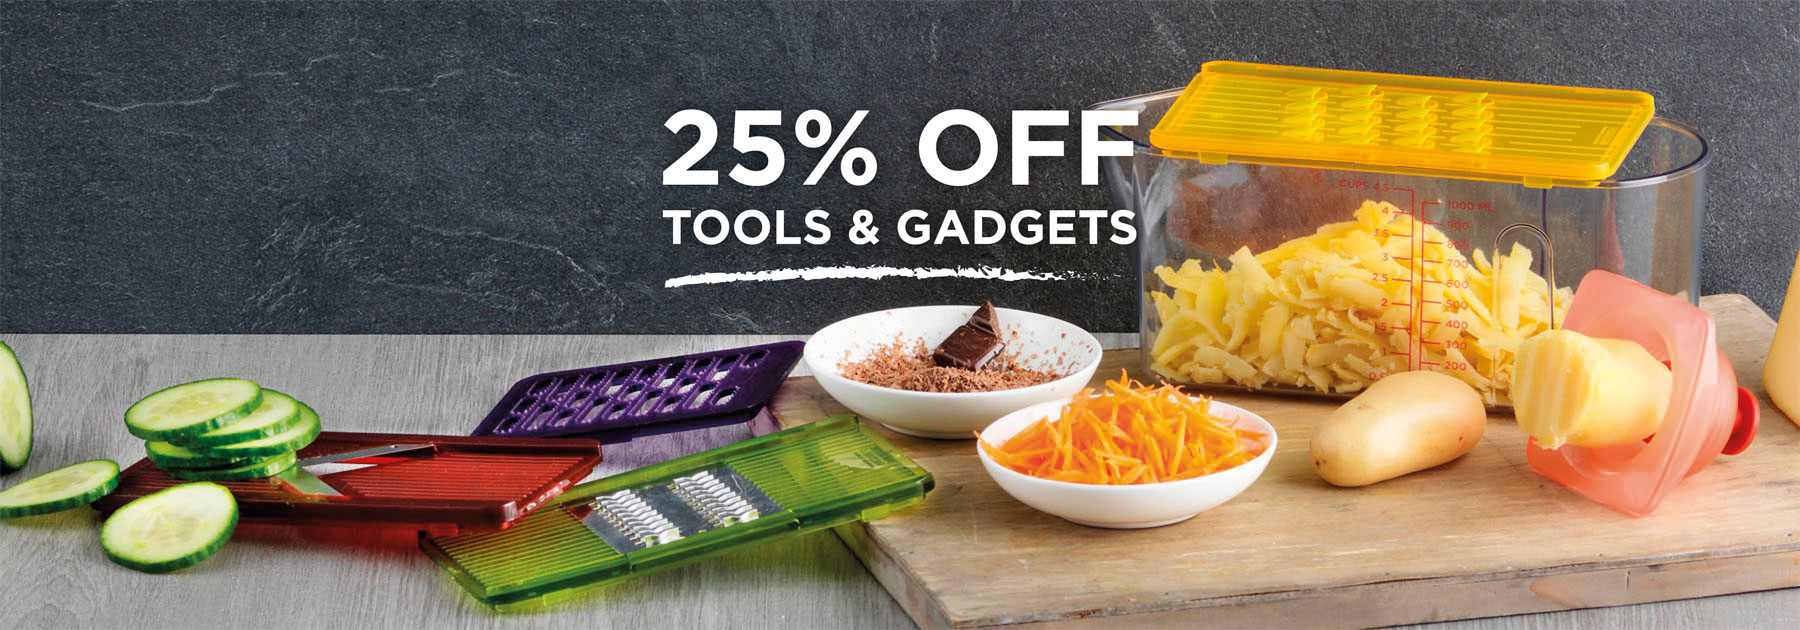 Black Friday Offers, 25% OFF, Tools & Gadgets